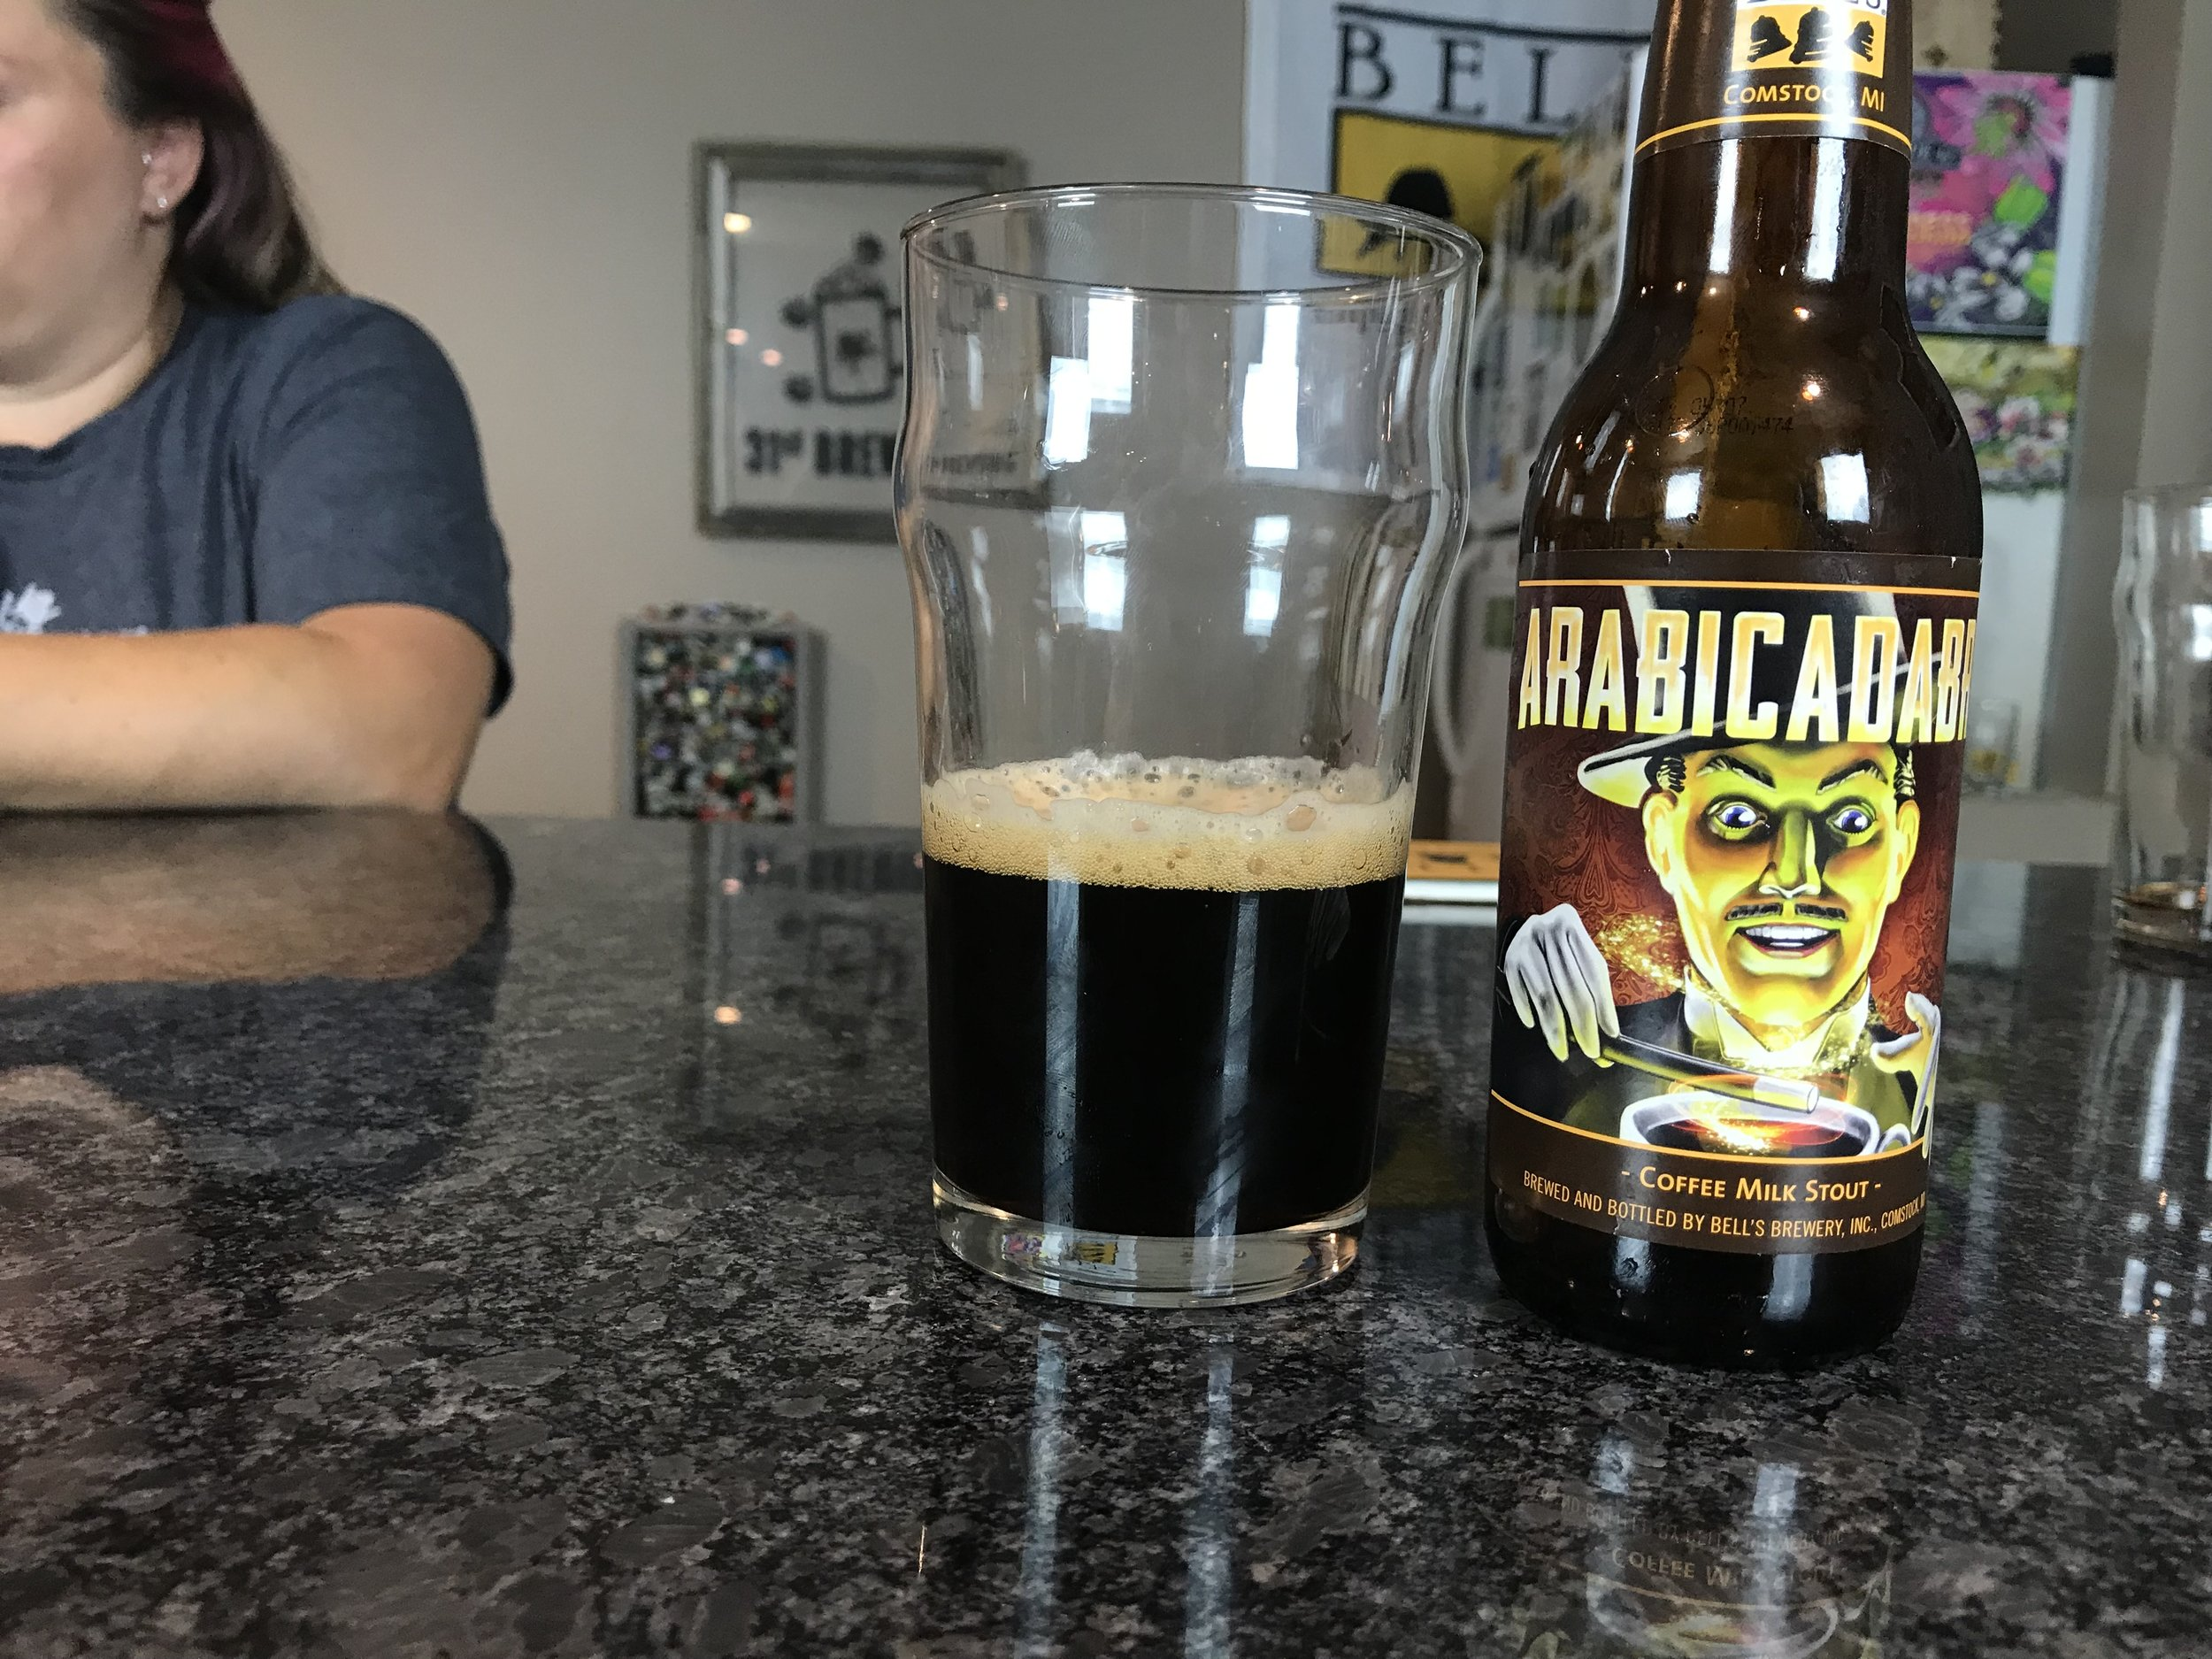 Arabicadabra 5.5% ABV - Want to see the Video review? Click on the image.